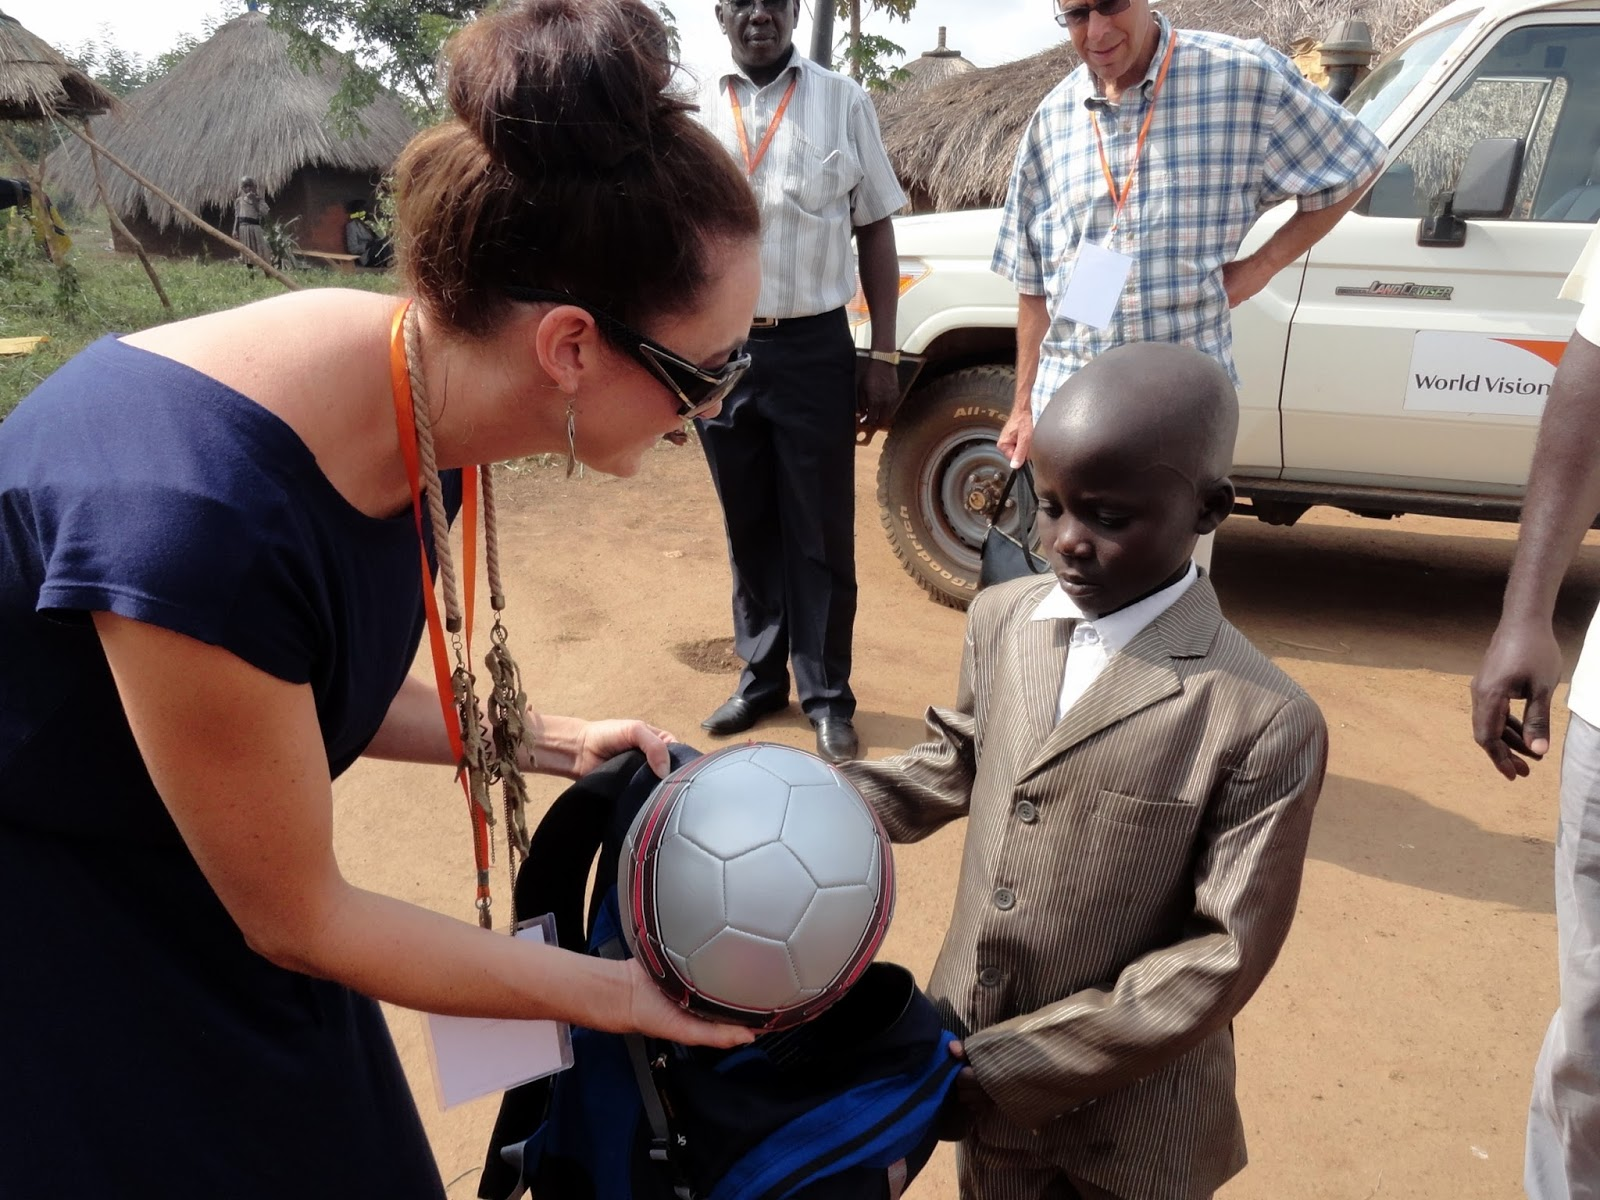 world vision sponsored child in Uganda, Africa